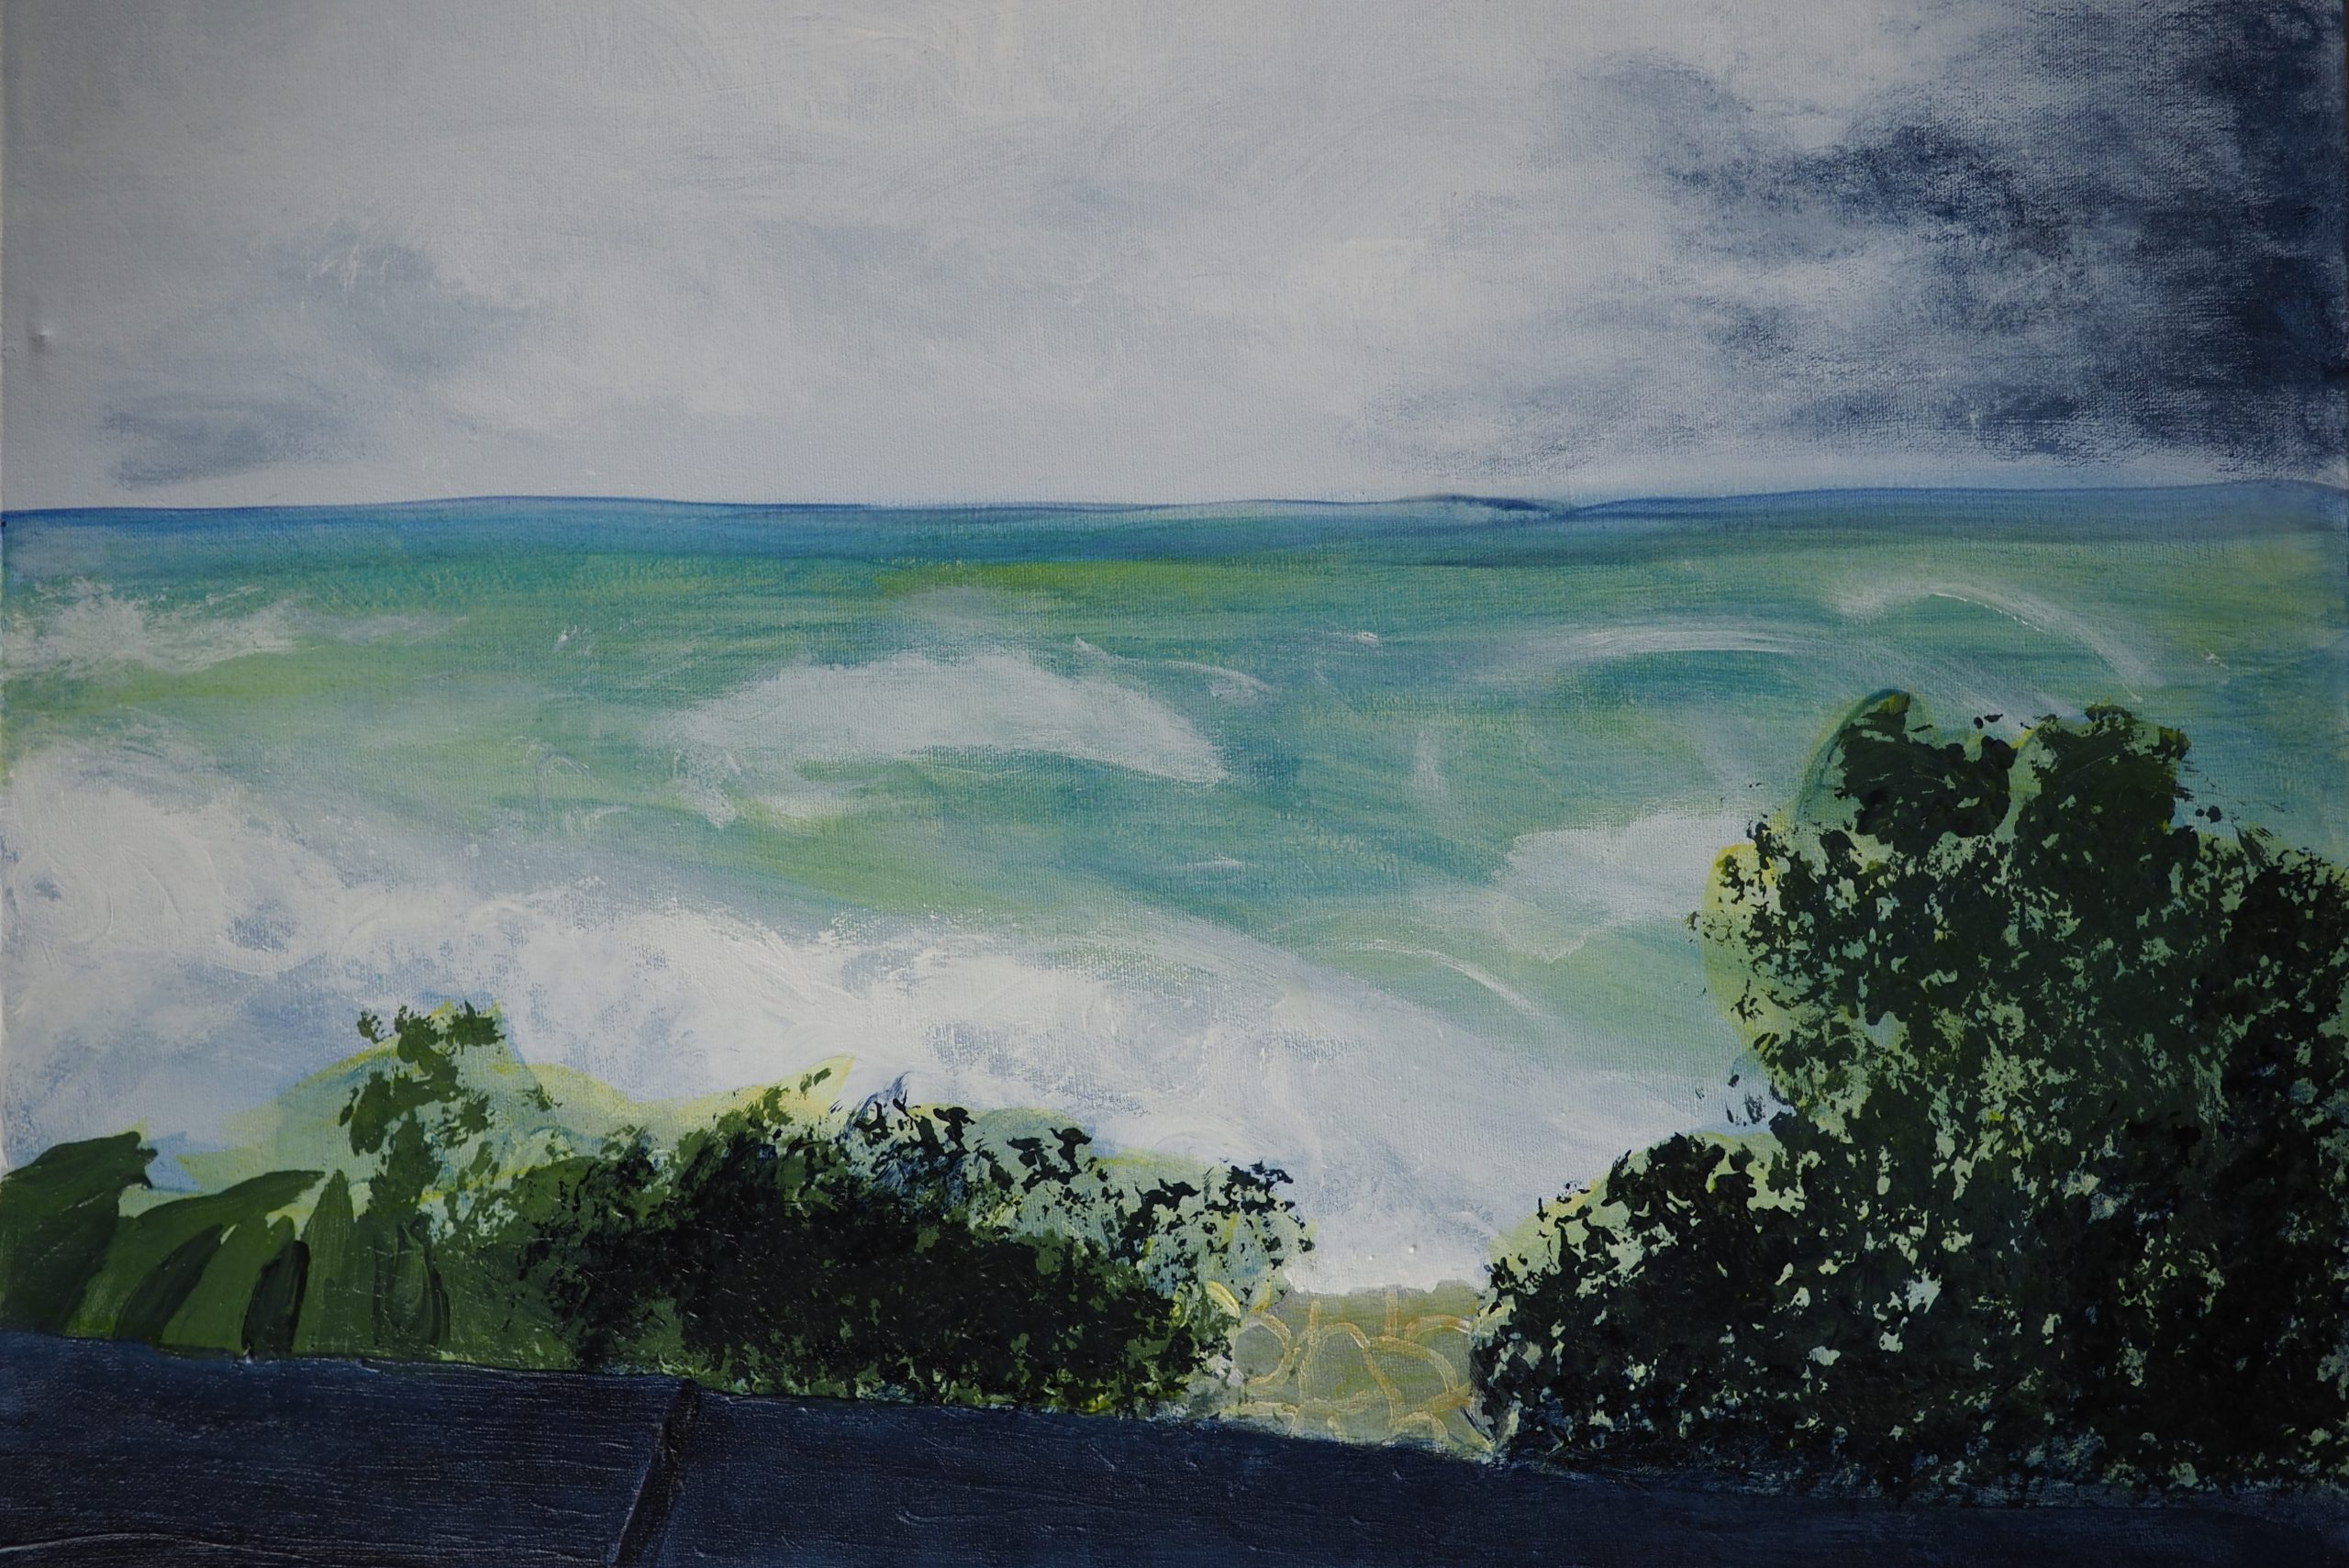 Stormwatching from the Beach, 18 in x 24 in, acrylic on canvas (2019)